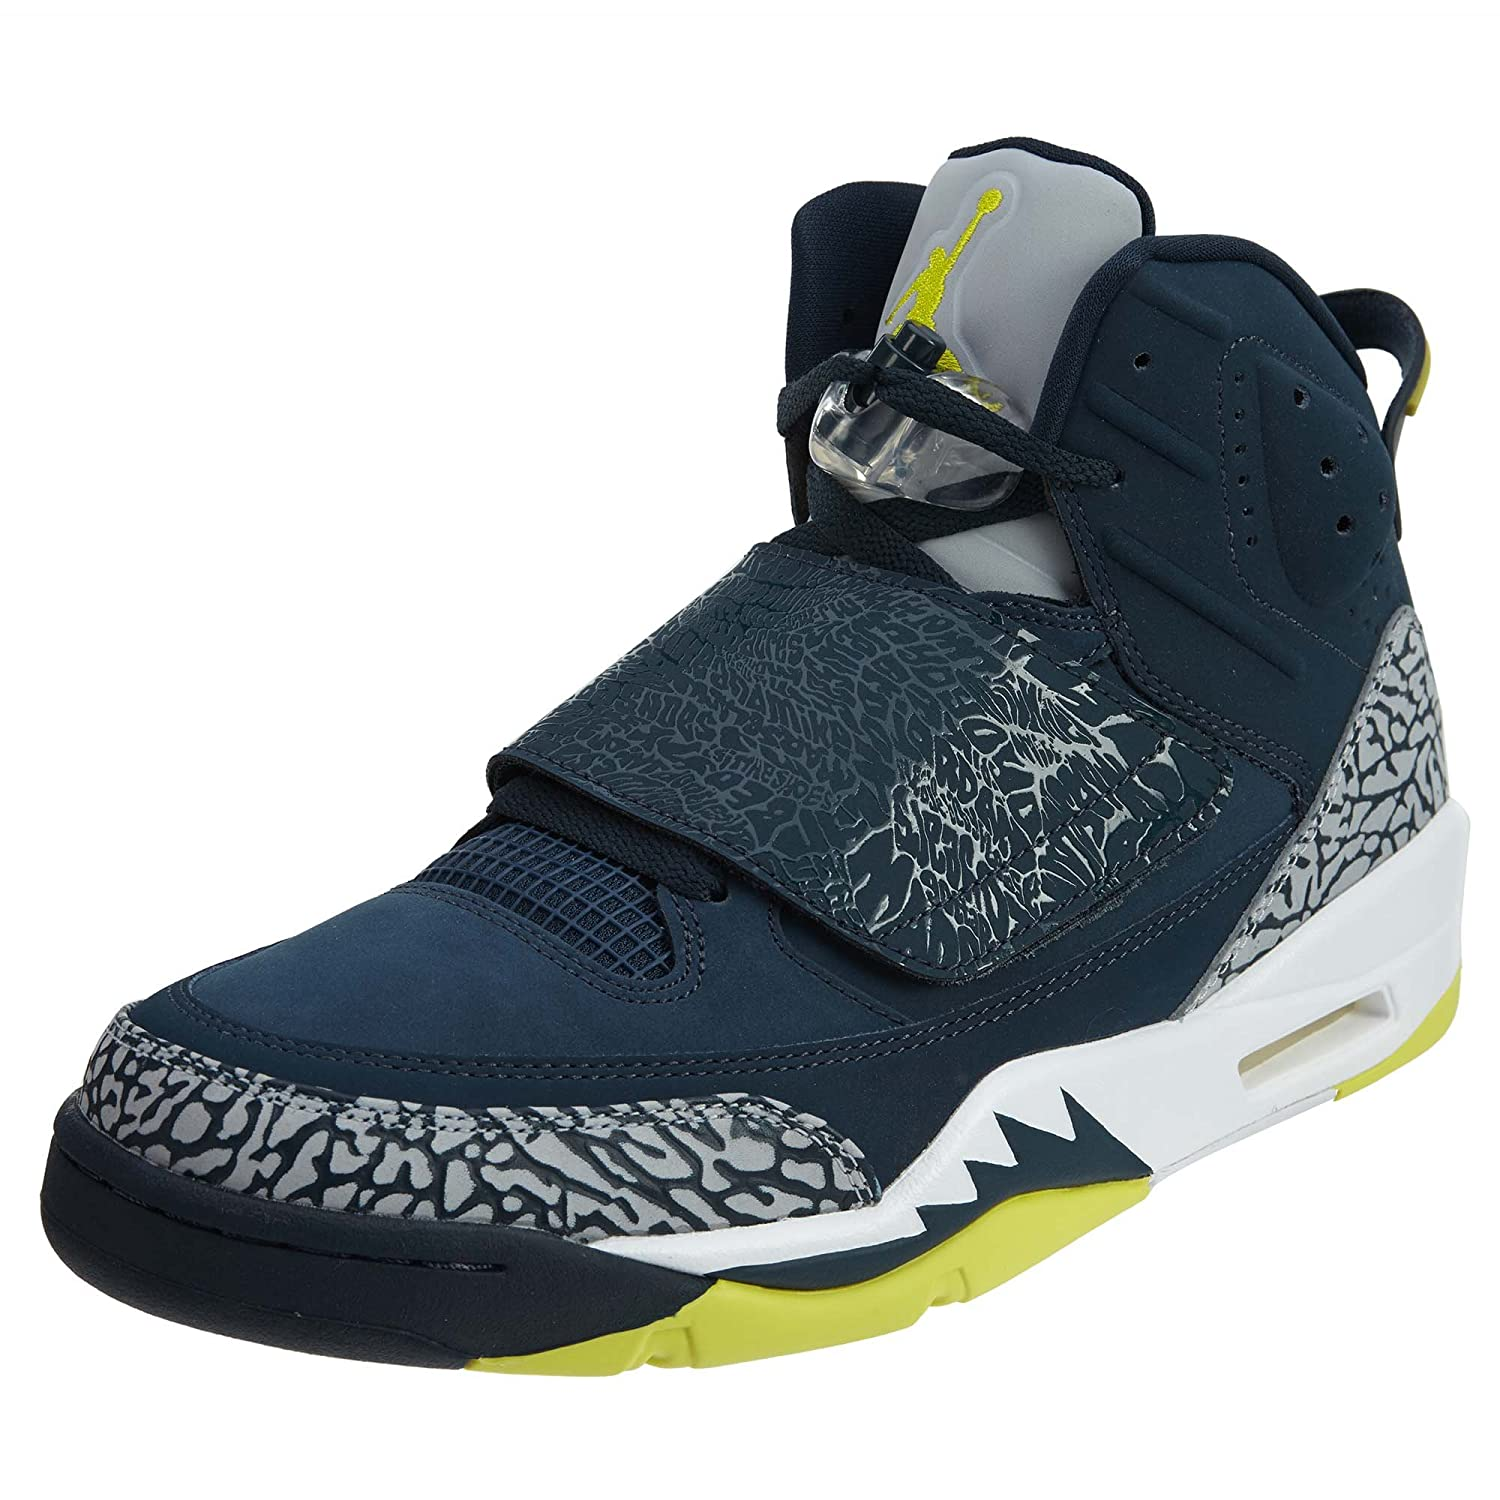 Air Jordan Son Of Stealth-Schuhe  21 EU|Armory Navy/Electrolime-white